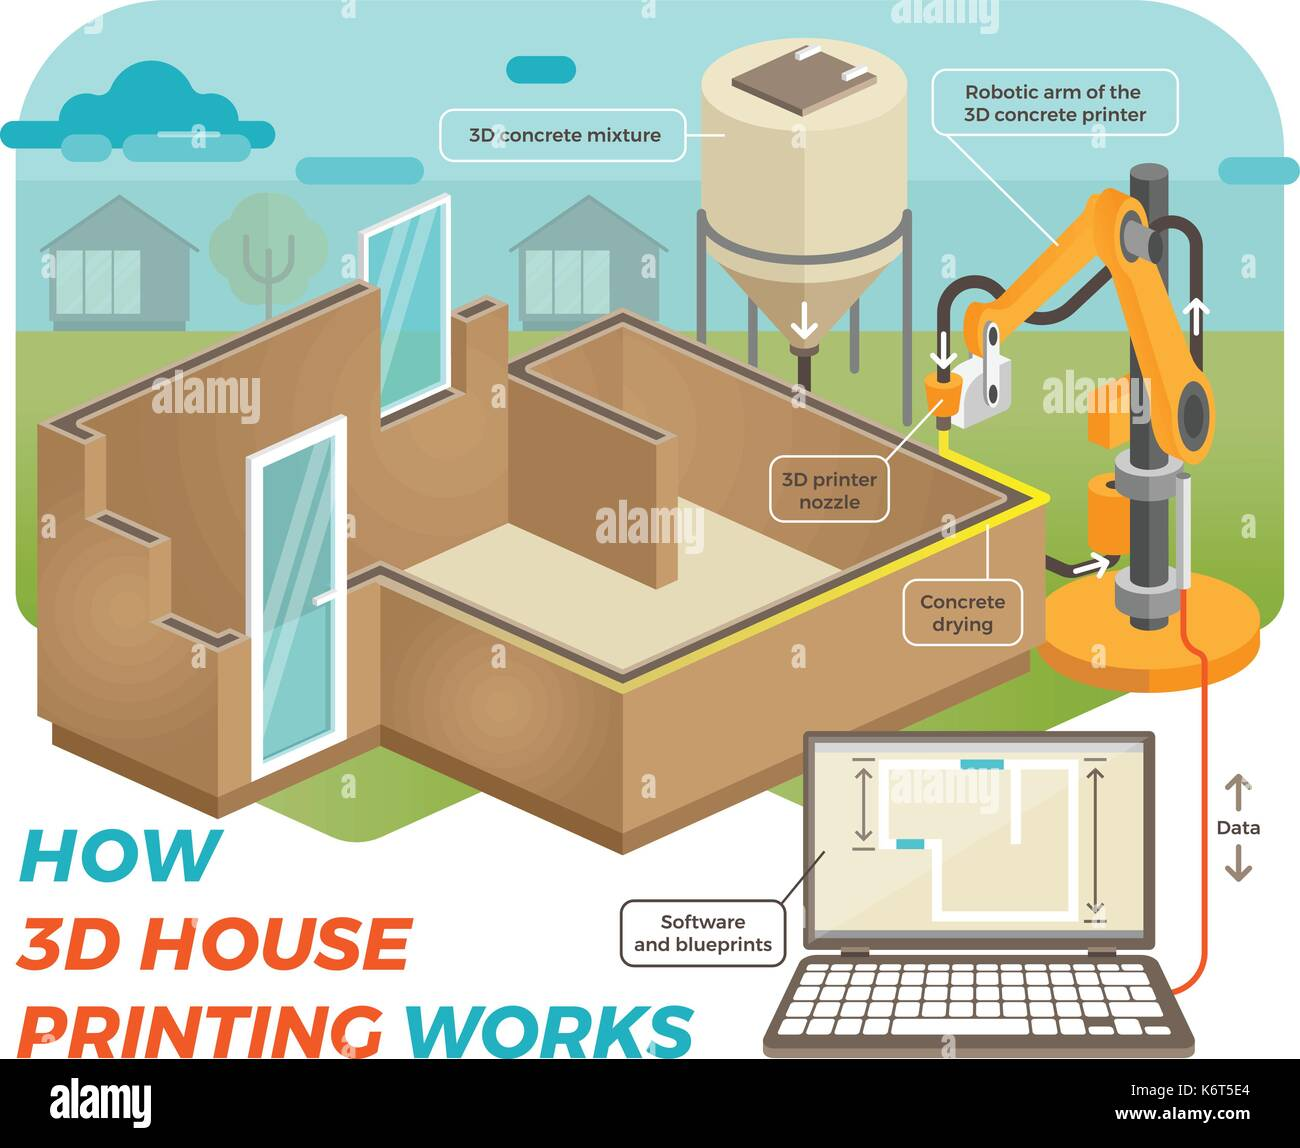 How 3d house printing works schematic isometric illustration with schematic isometric illustration with background showing 3d house printing process with robotic arm concrete going out malvernweather Gallery